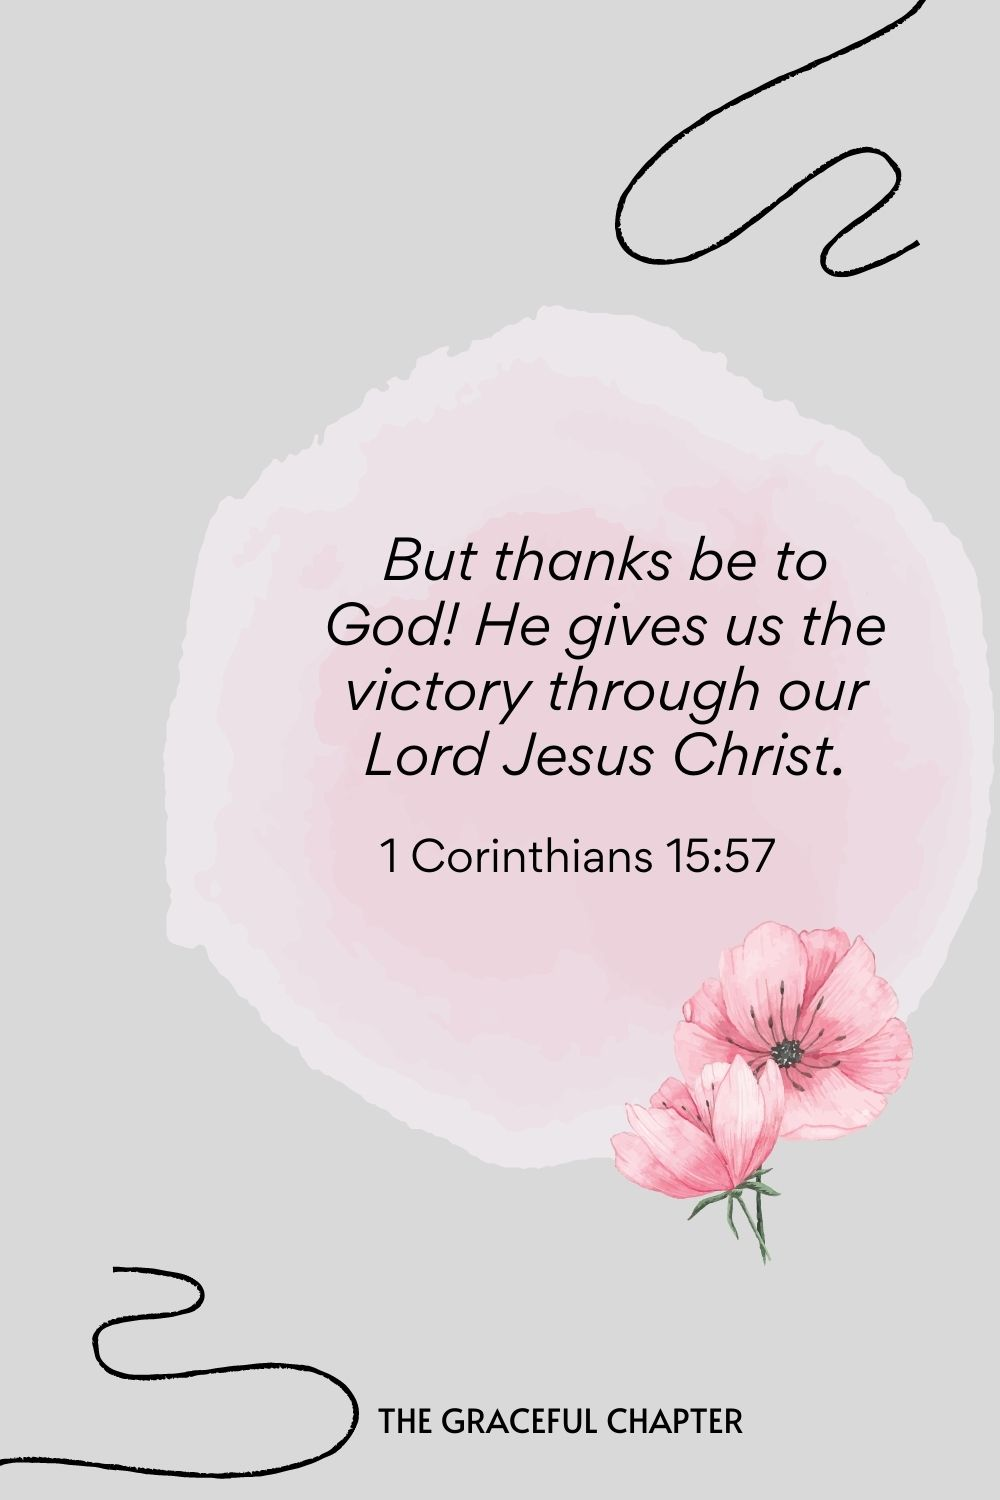 But thanks be to God! He gives us the victory through our Lord Jesus Christ.  1 Corinthians 15:57